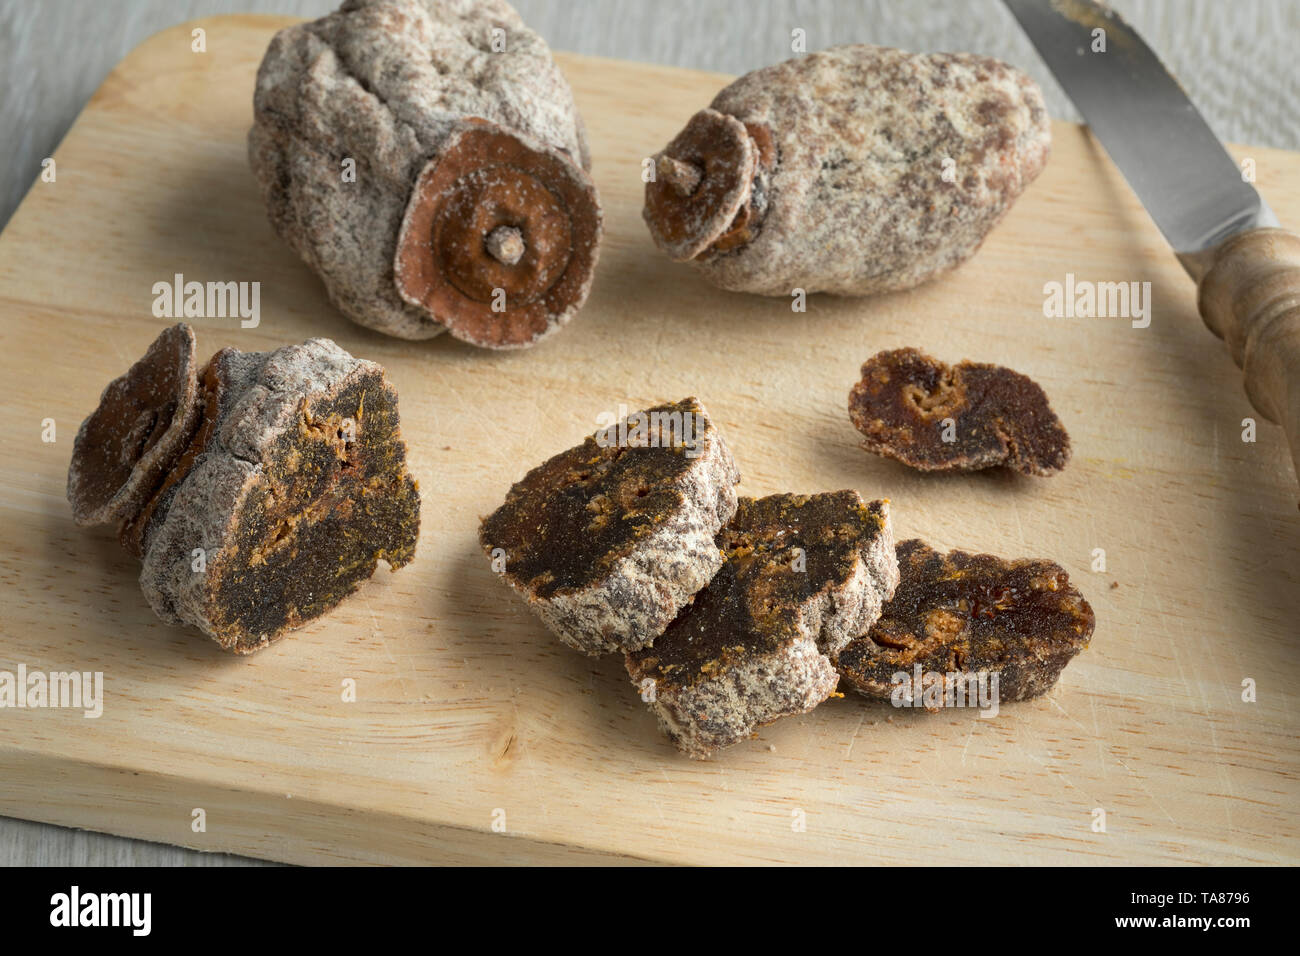 Dried kaki fruit and slices on a cutting board - Stock Image